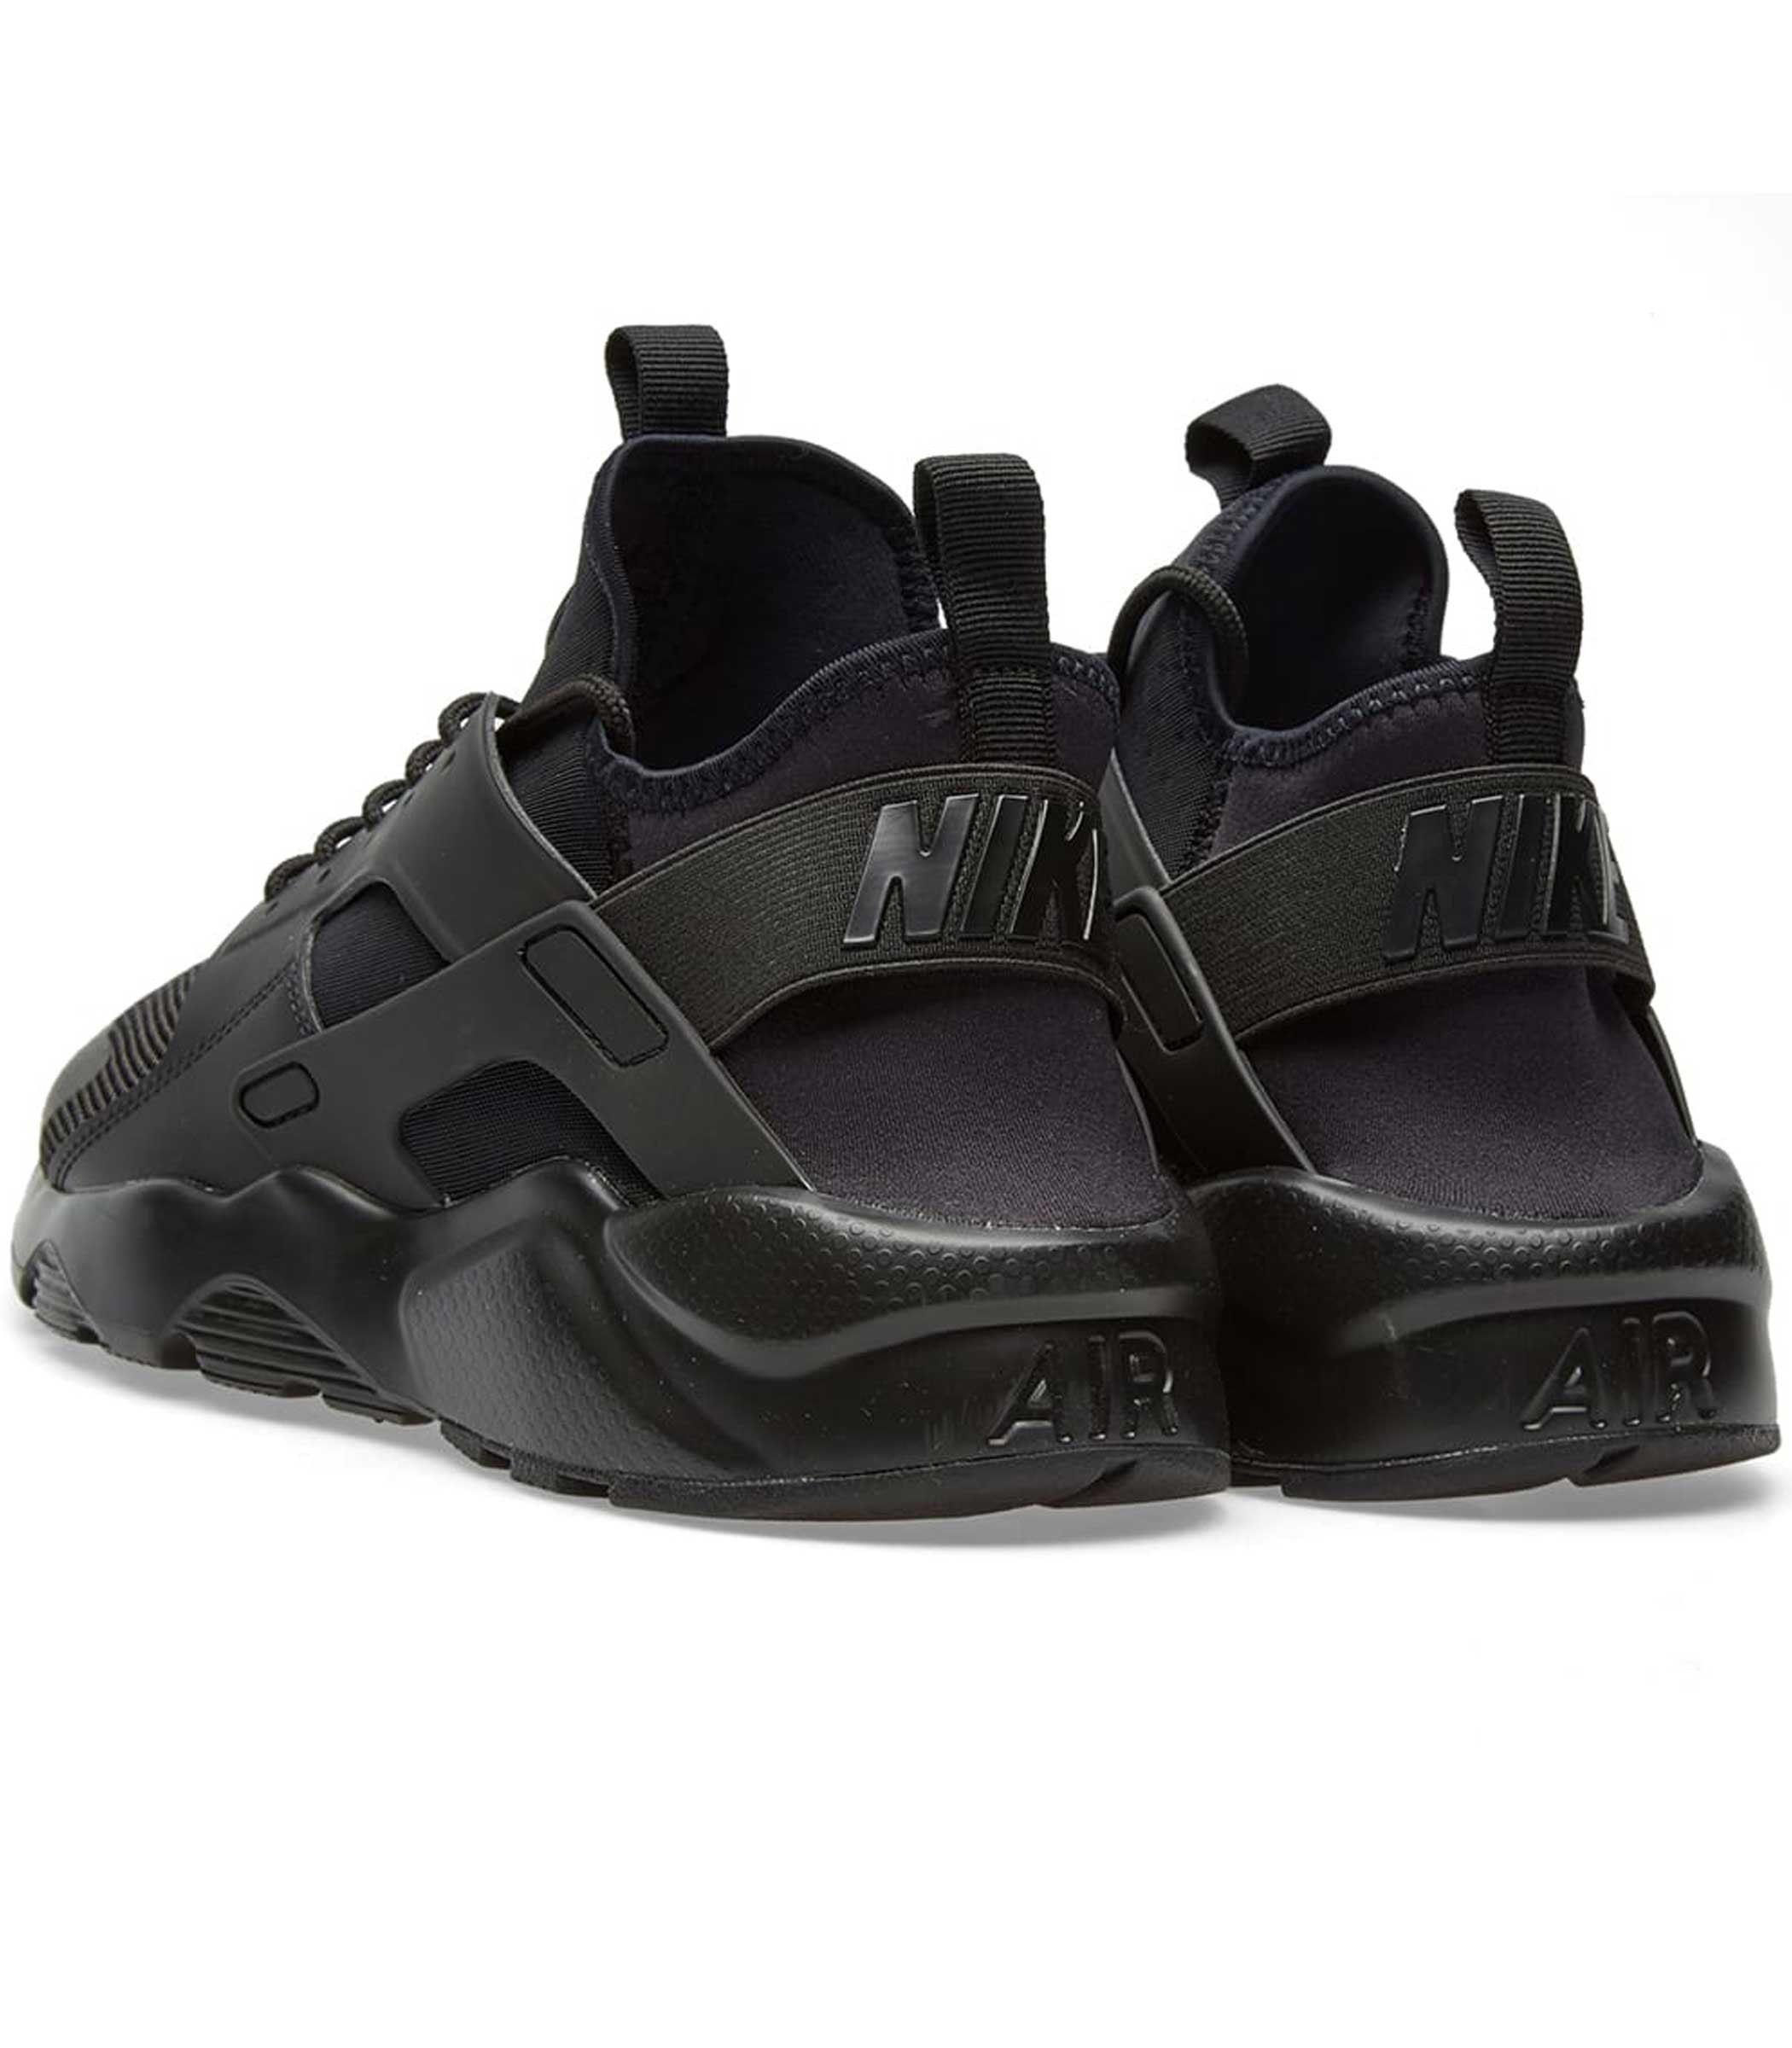 6533844de5b8e Acquista nike air huarache run ultra uomo - OFF74% sconti